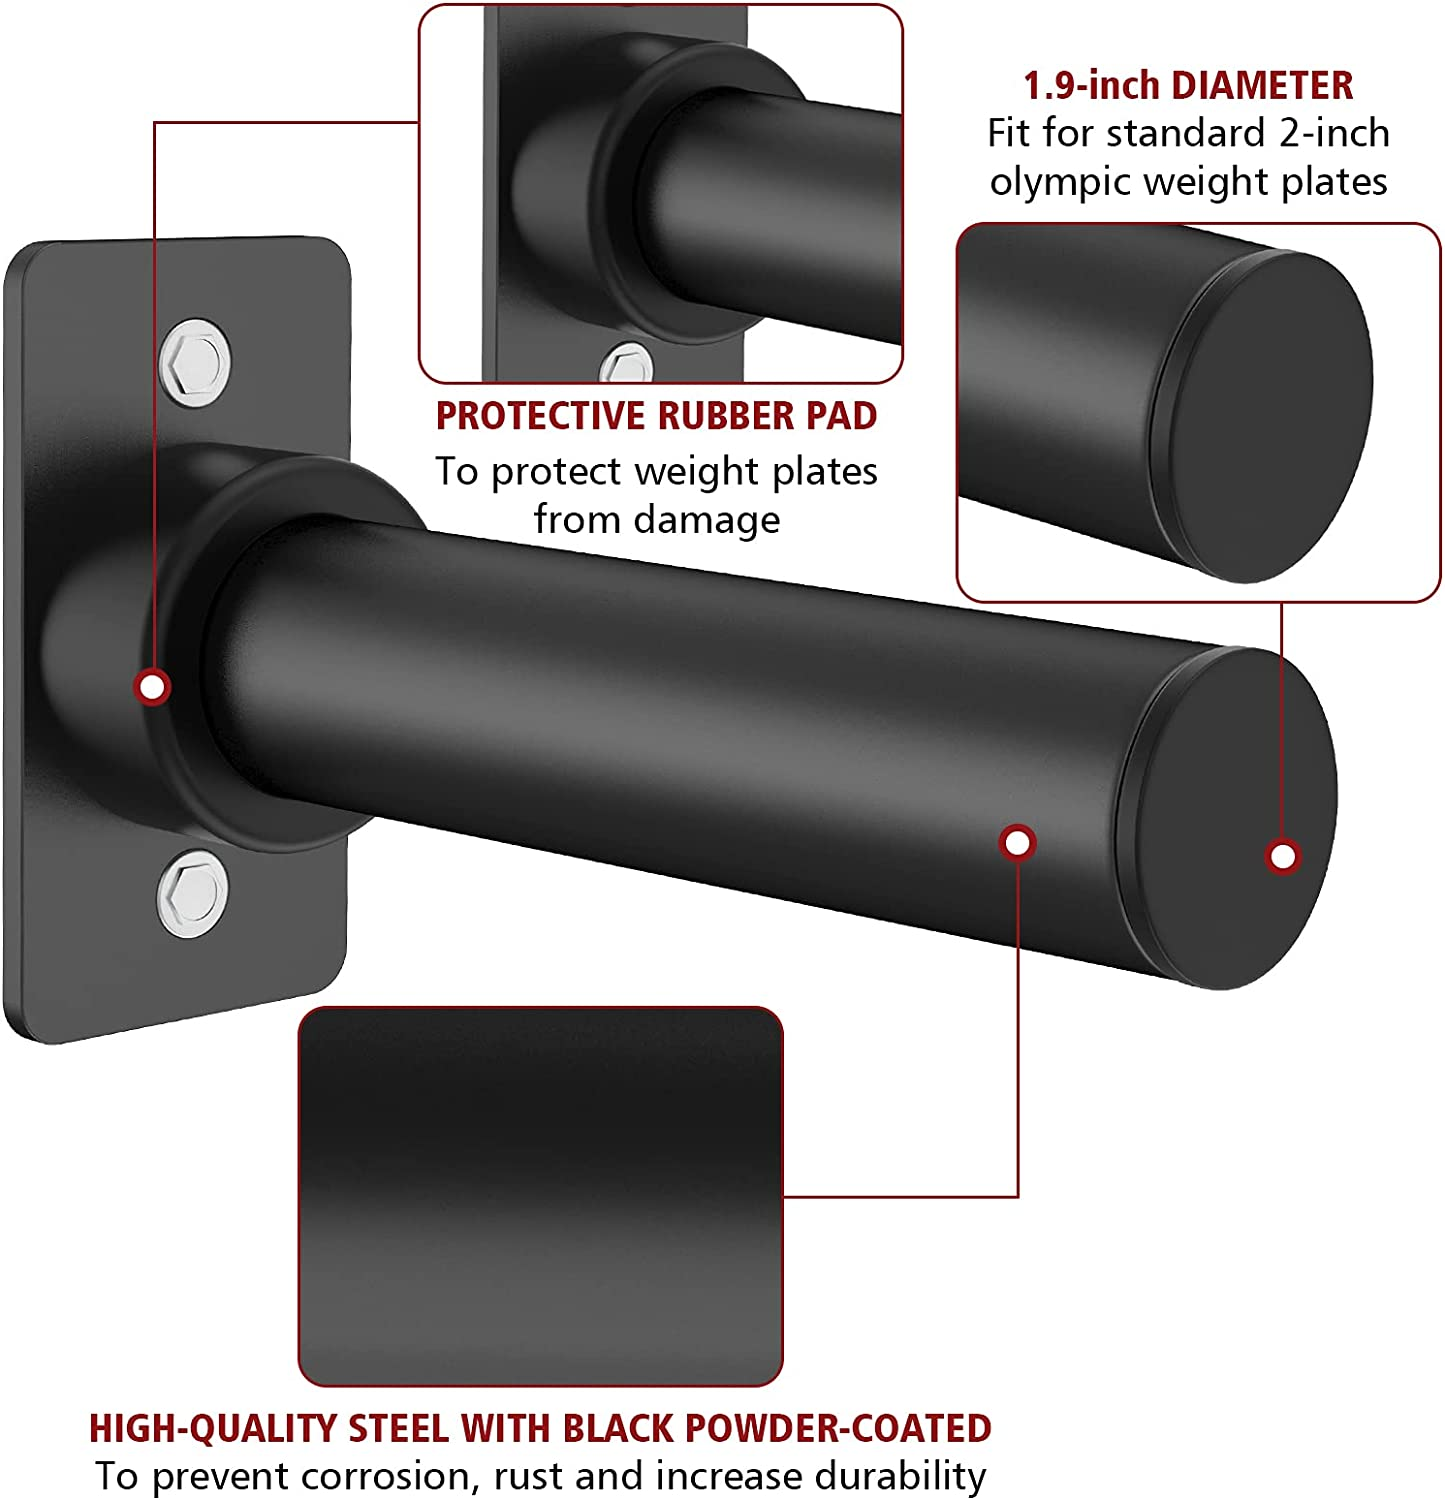 """Ulalov Wall Mounted Weight Plate Holder - Weight Plates Storage Fits 2"""" Olympic Weight Plates, Power Rack Weight Plate Attachment Accessories 9 inch, Protective Rubber Pad Hardware Included Pair : Sports & Outdoors"""